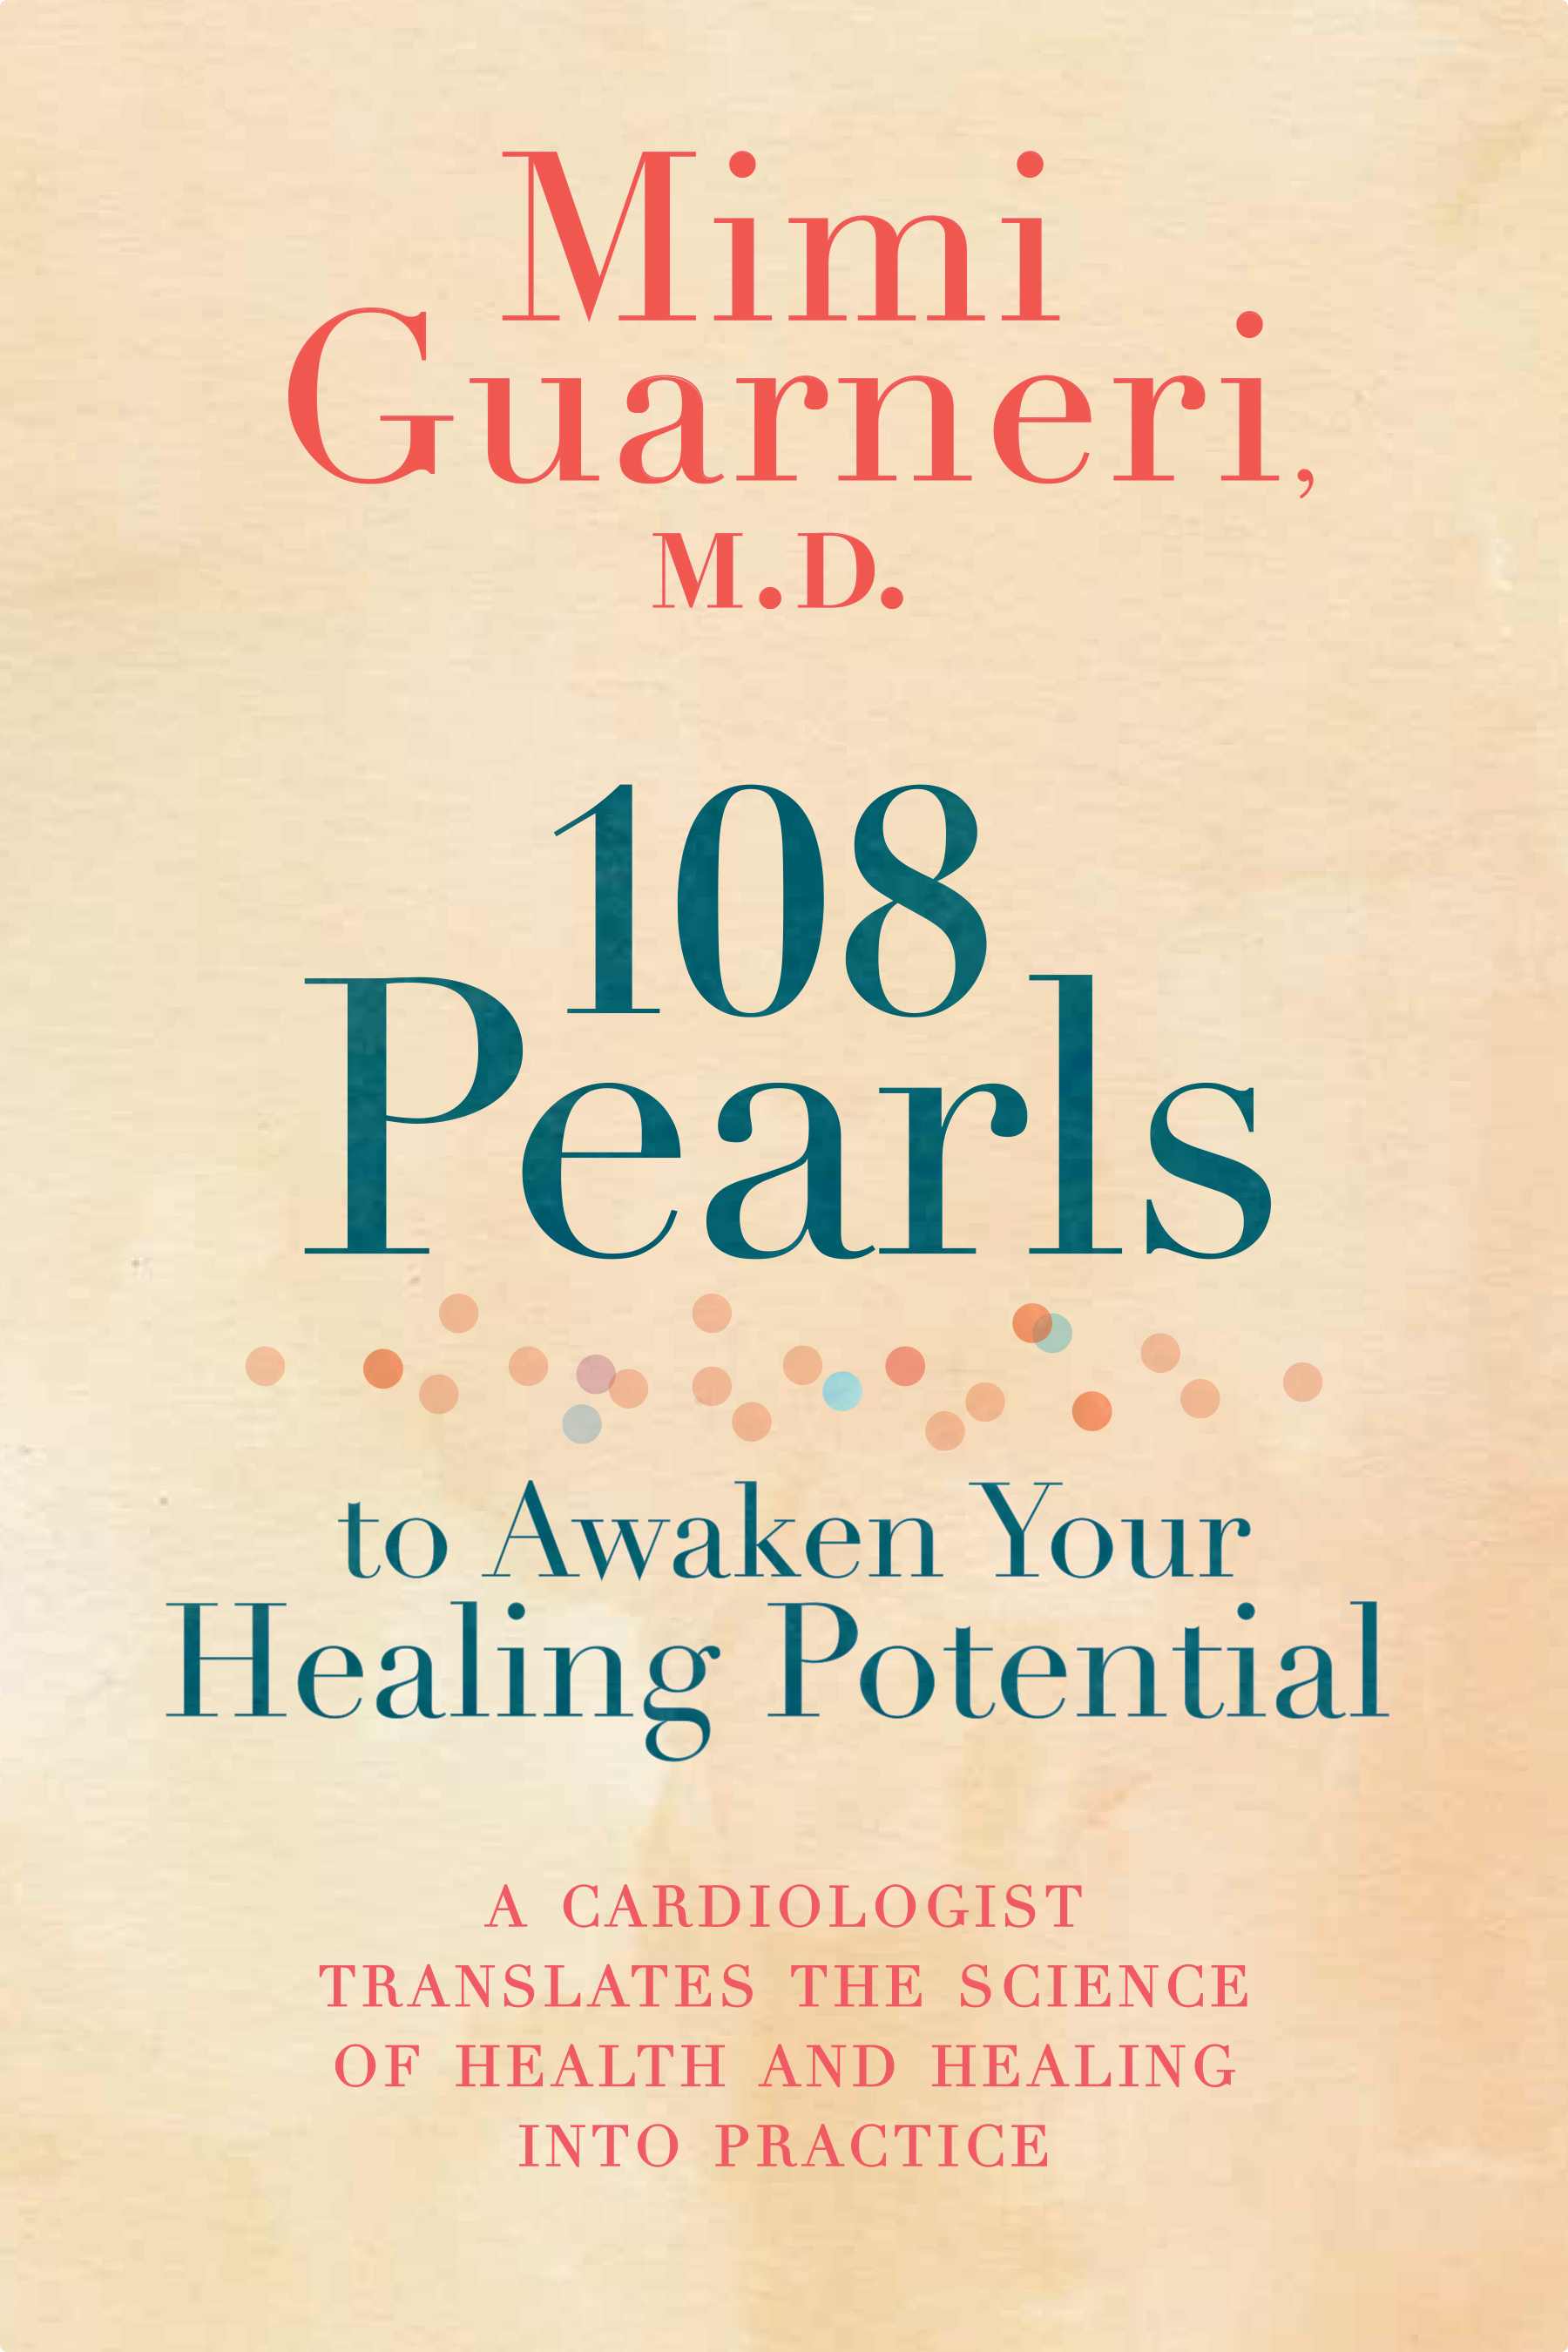 108-Pearls-to-Awaken-Your-Healing-Potential-A-Cardiologist-Translates-the-Science-of-Health-and-Healing-into-Practice